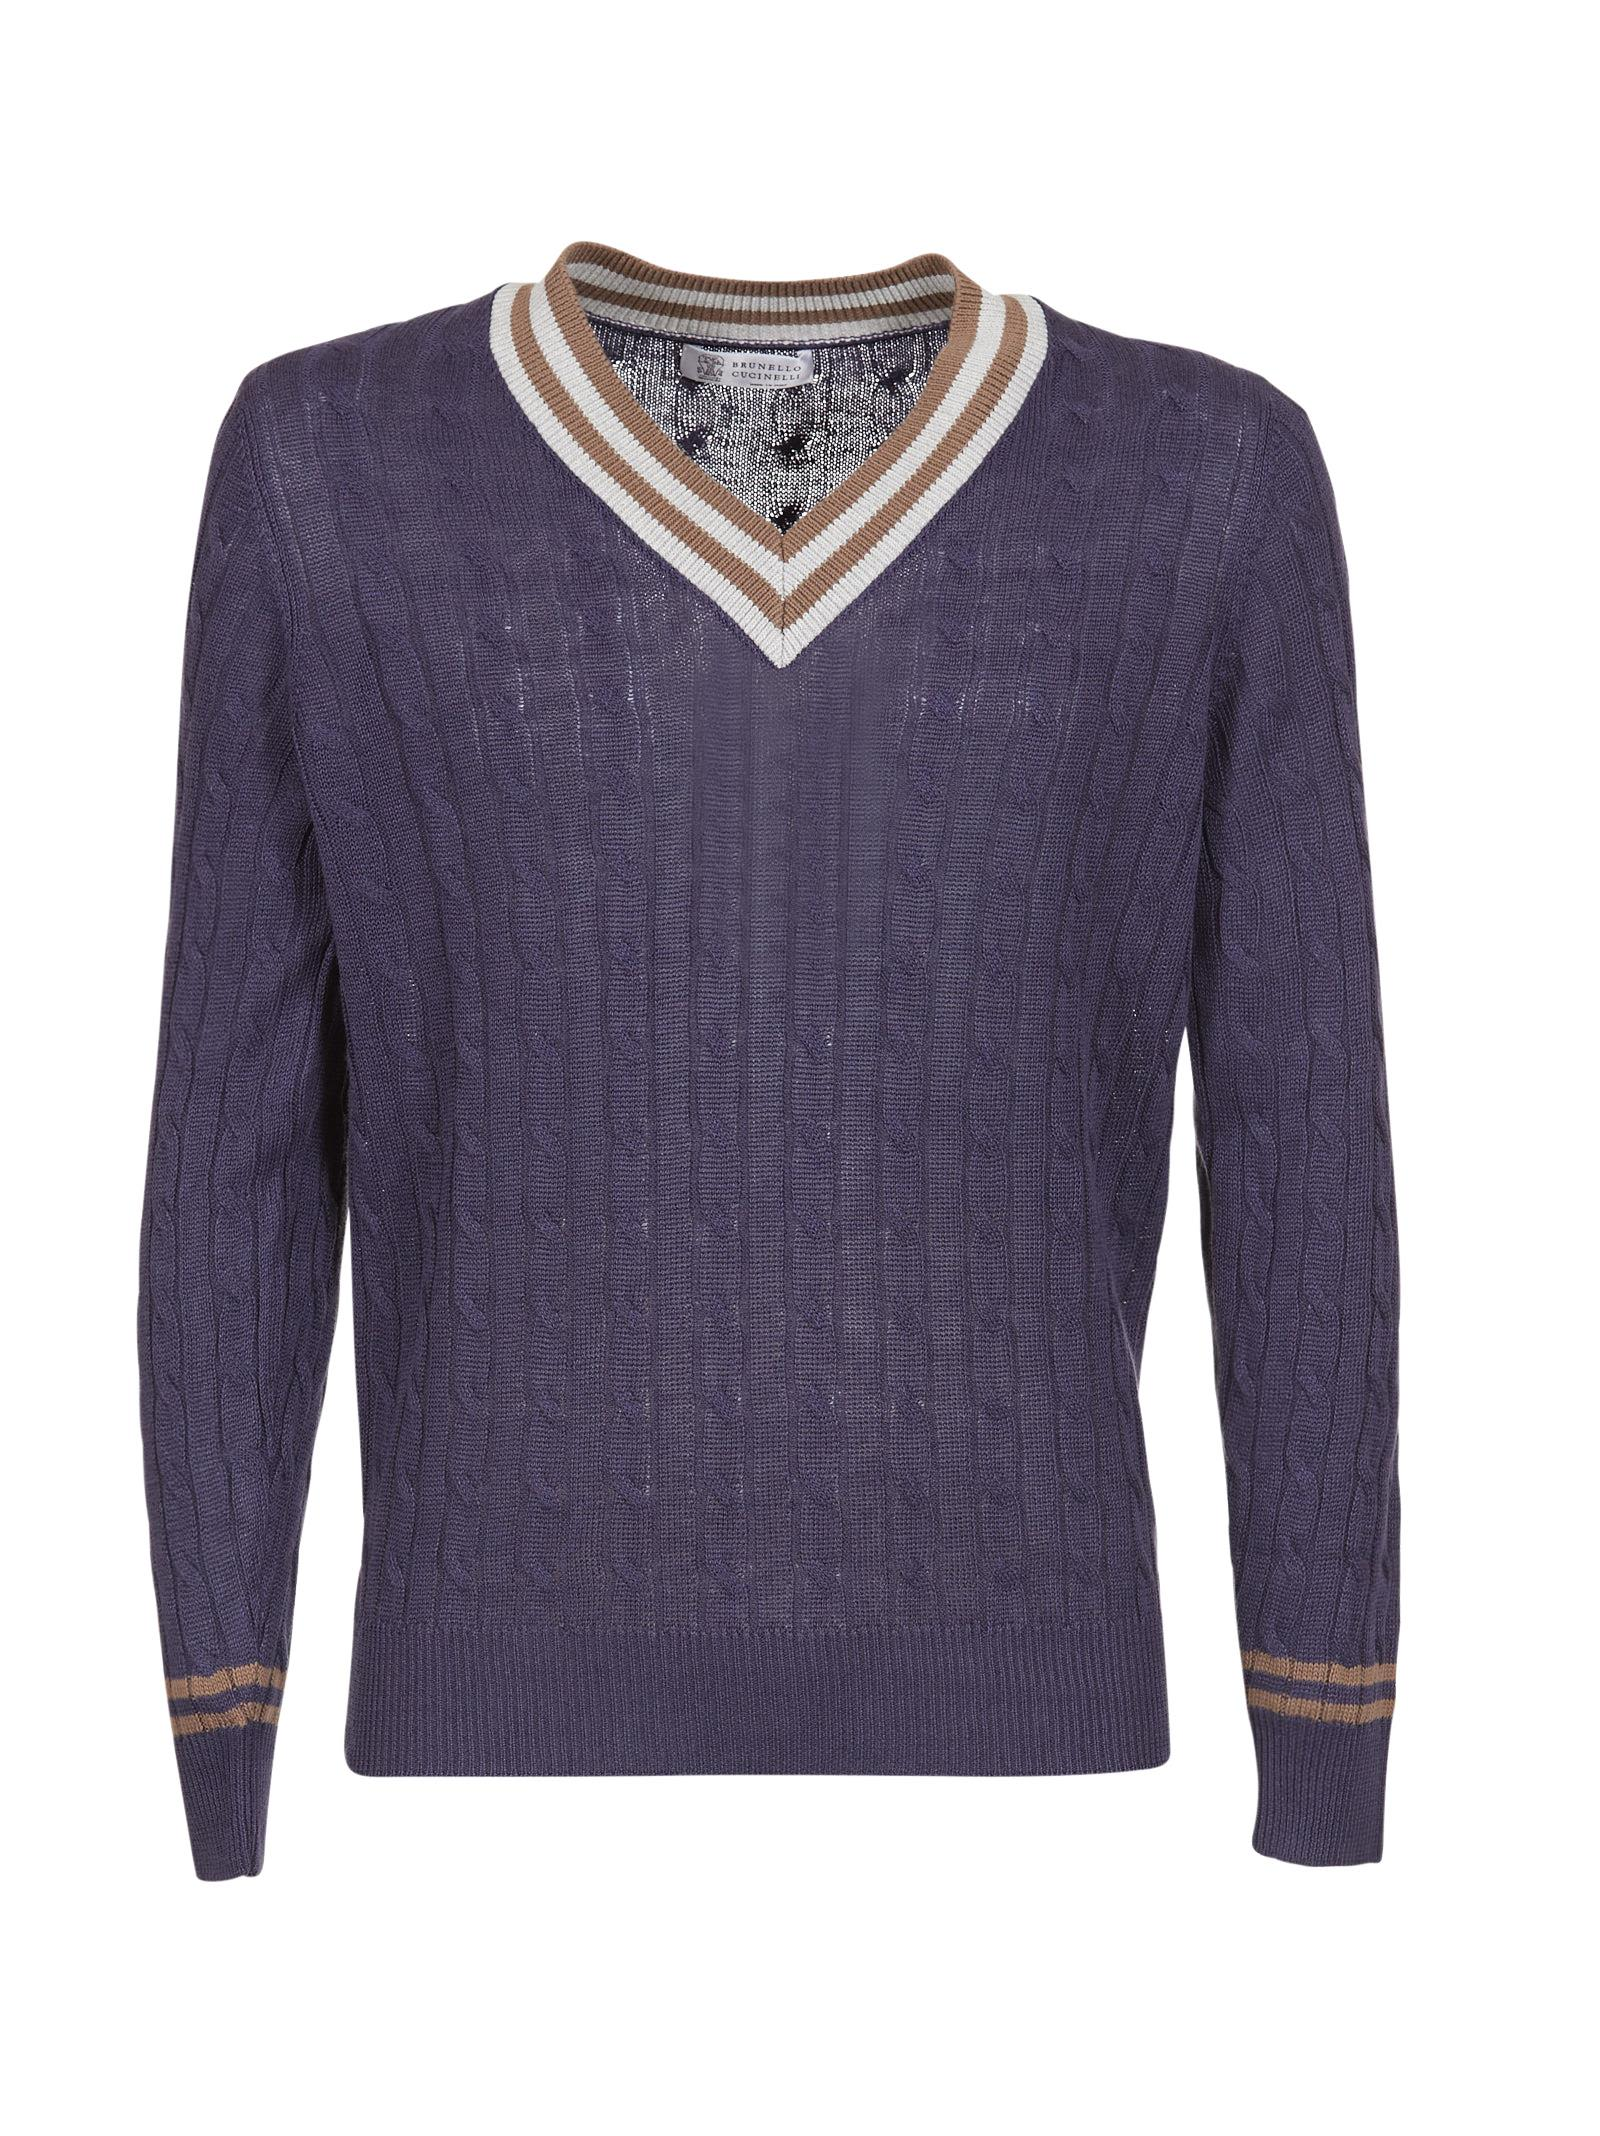 Brunello Cucinelli Knitted Sweater